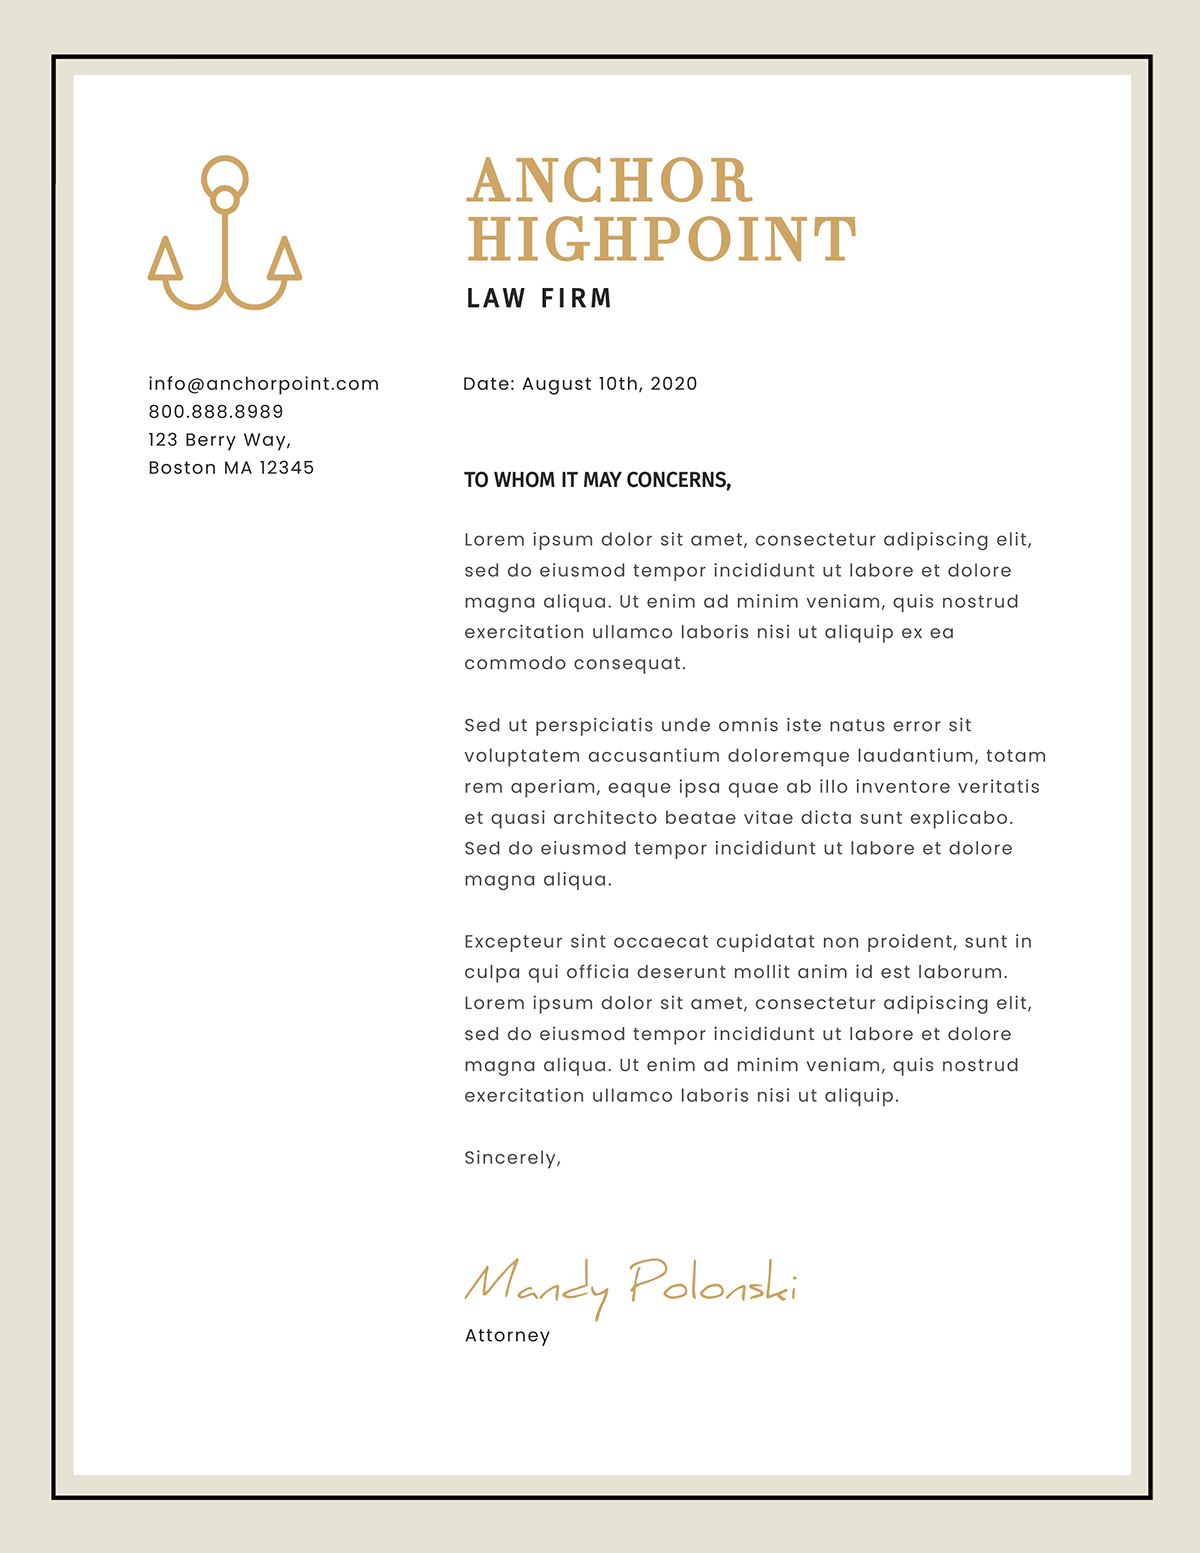 White and gold business letter template available in Visme.